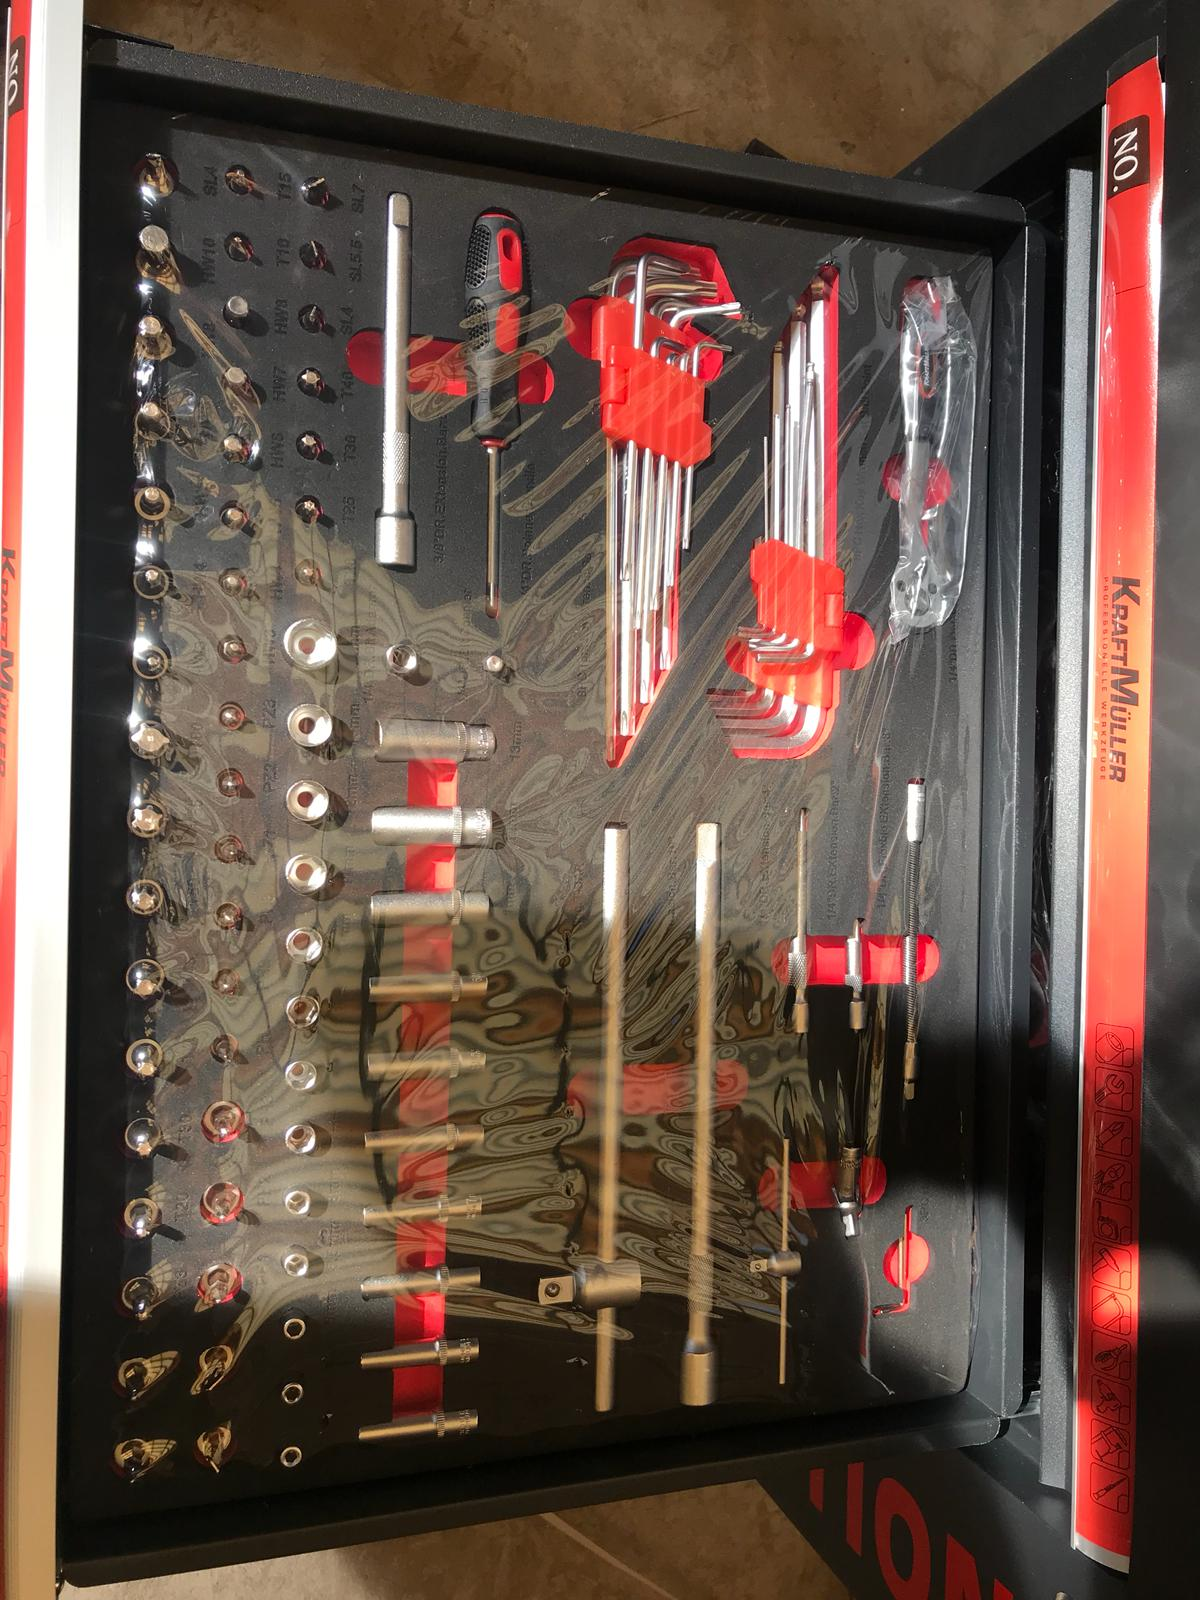 Lot 18054 - V Brand New Seven Drawer Locking Garage Tool Cabinet With Lockable Casters - Seven EVA Drawers of